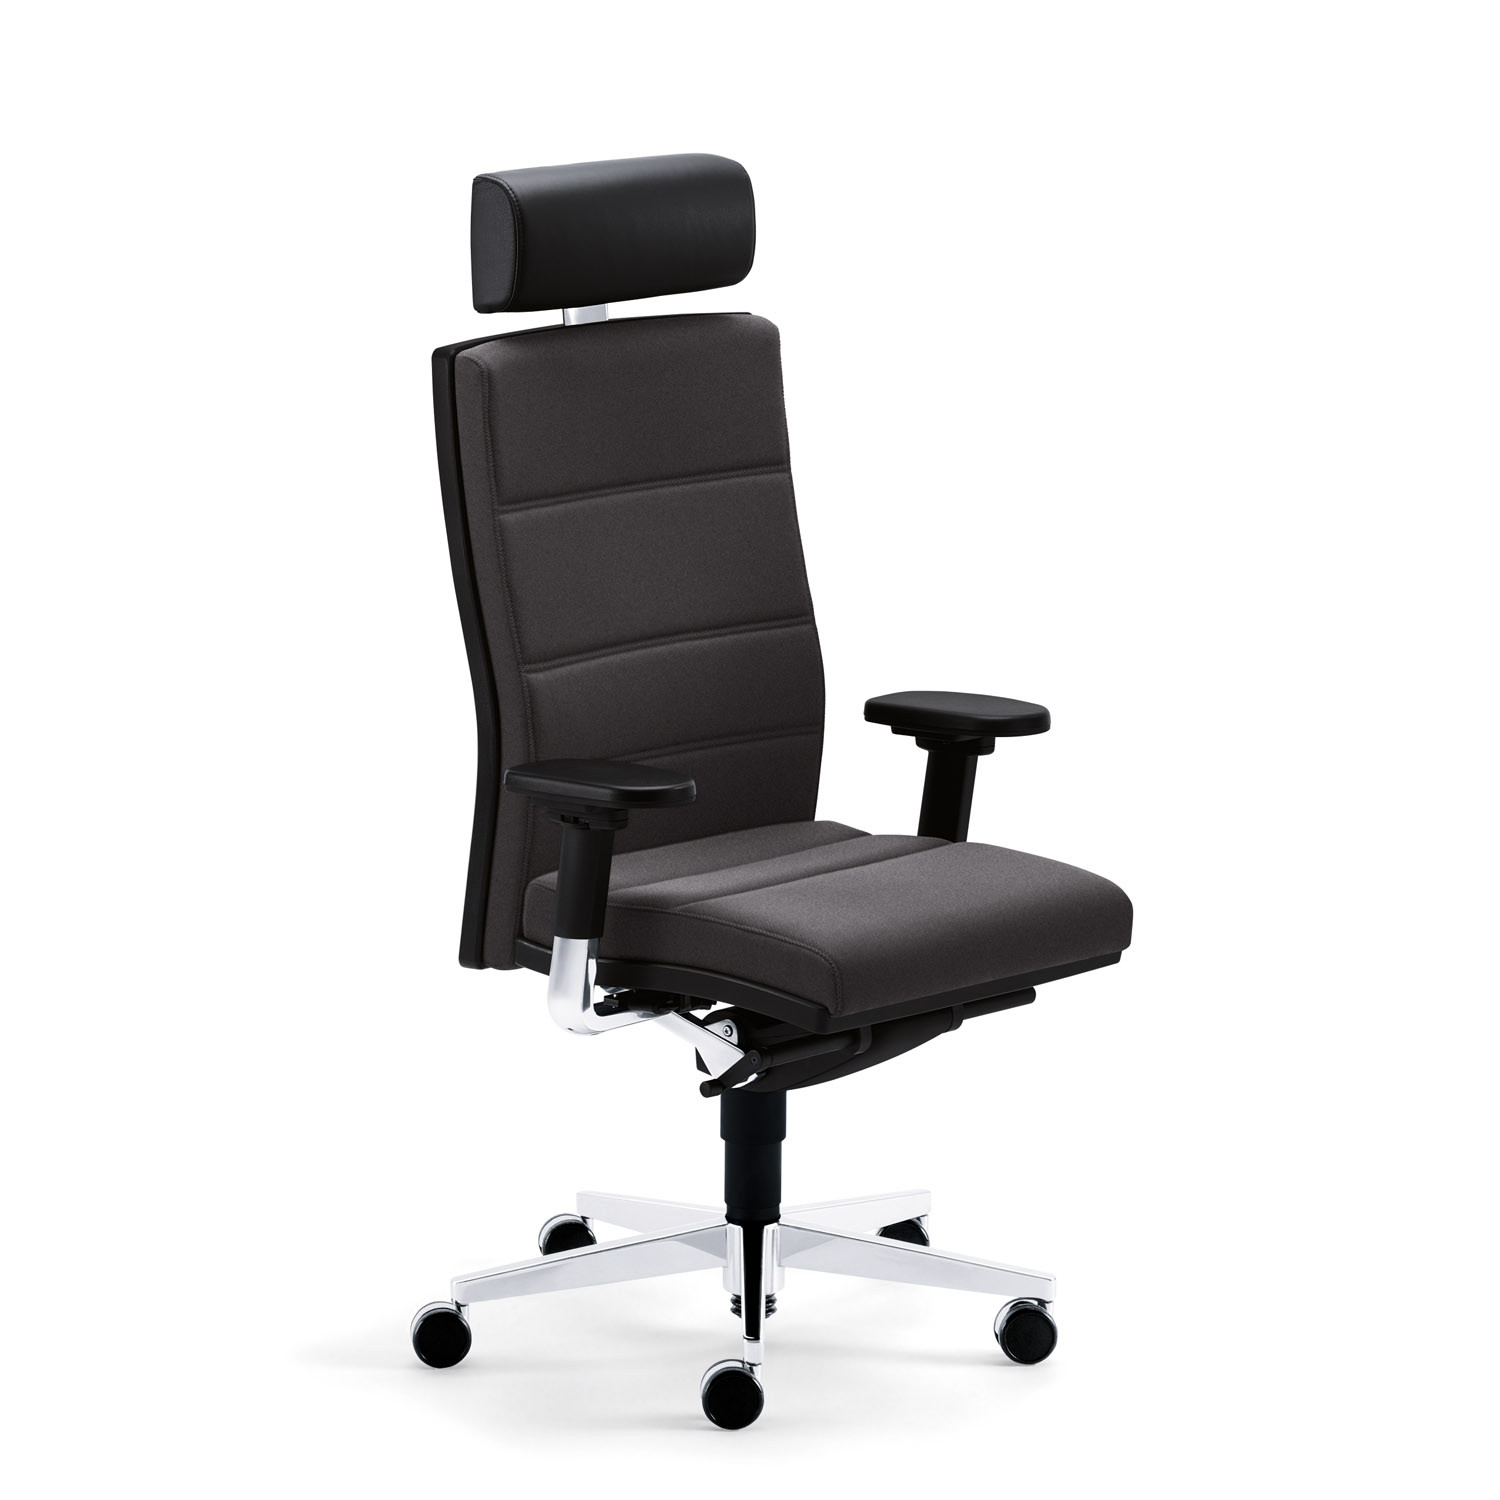 Mr. 24 Executive Chair